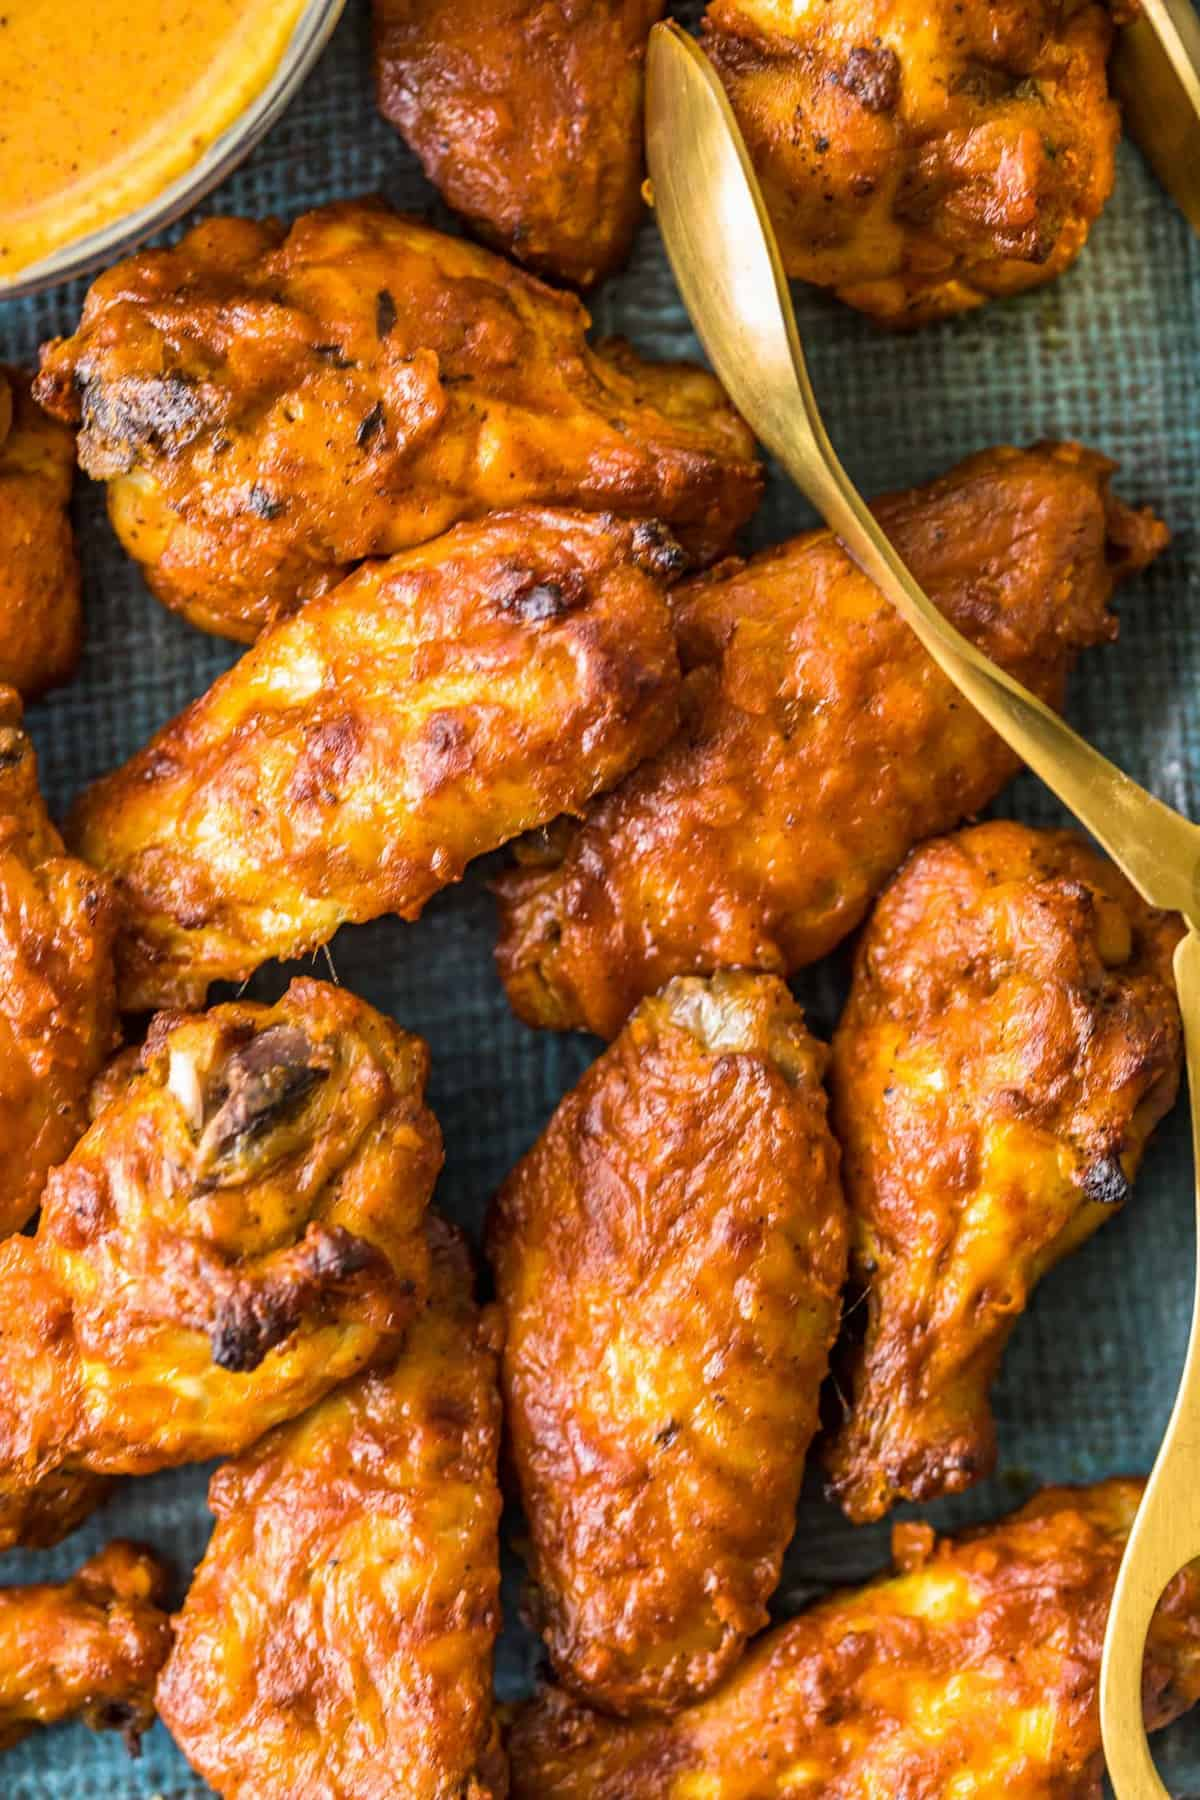 Baked wings ready to eat